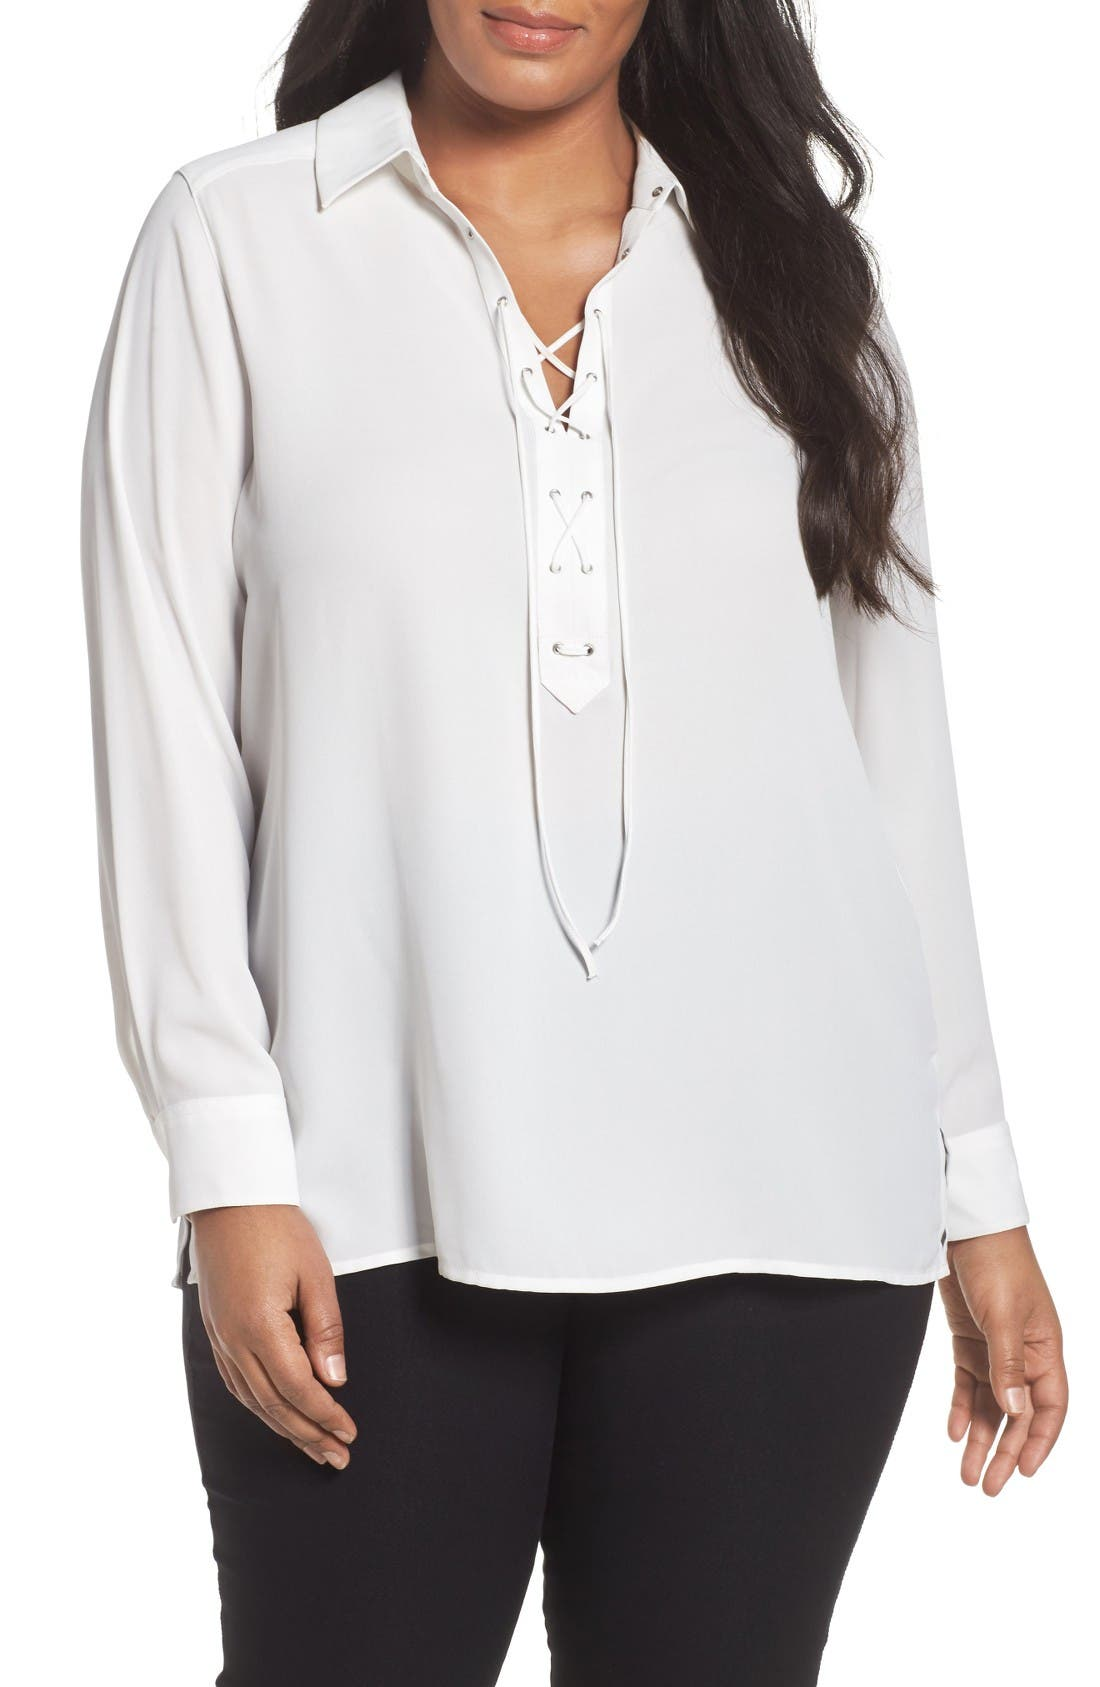 Main Image - Foxcroft Lace-Up Blouse (Plus Size)